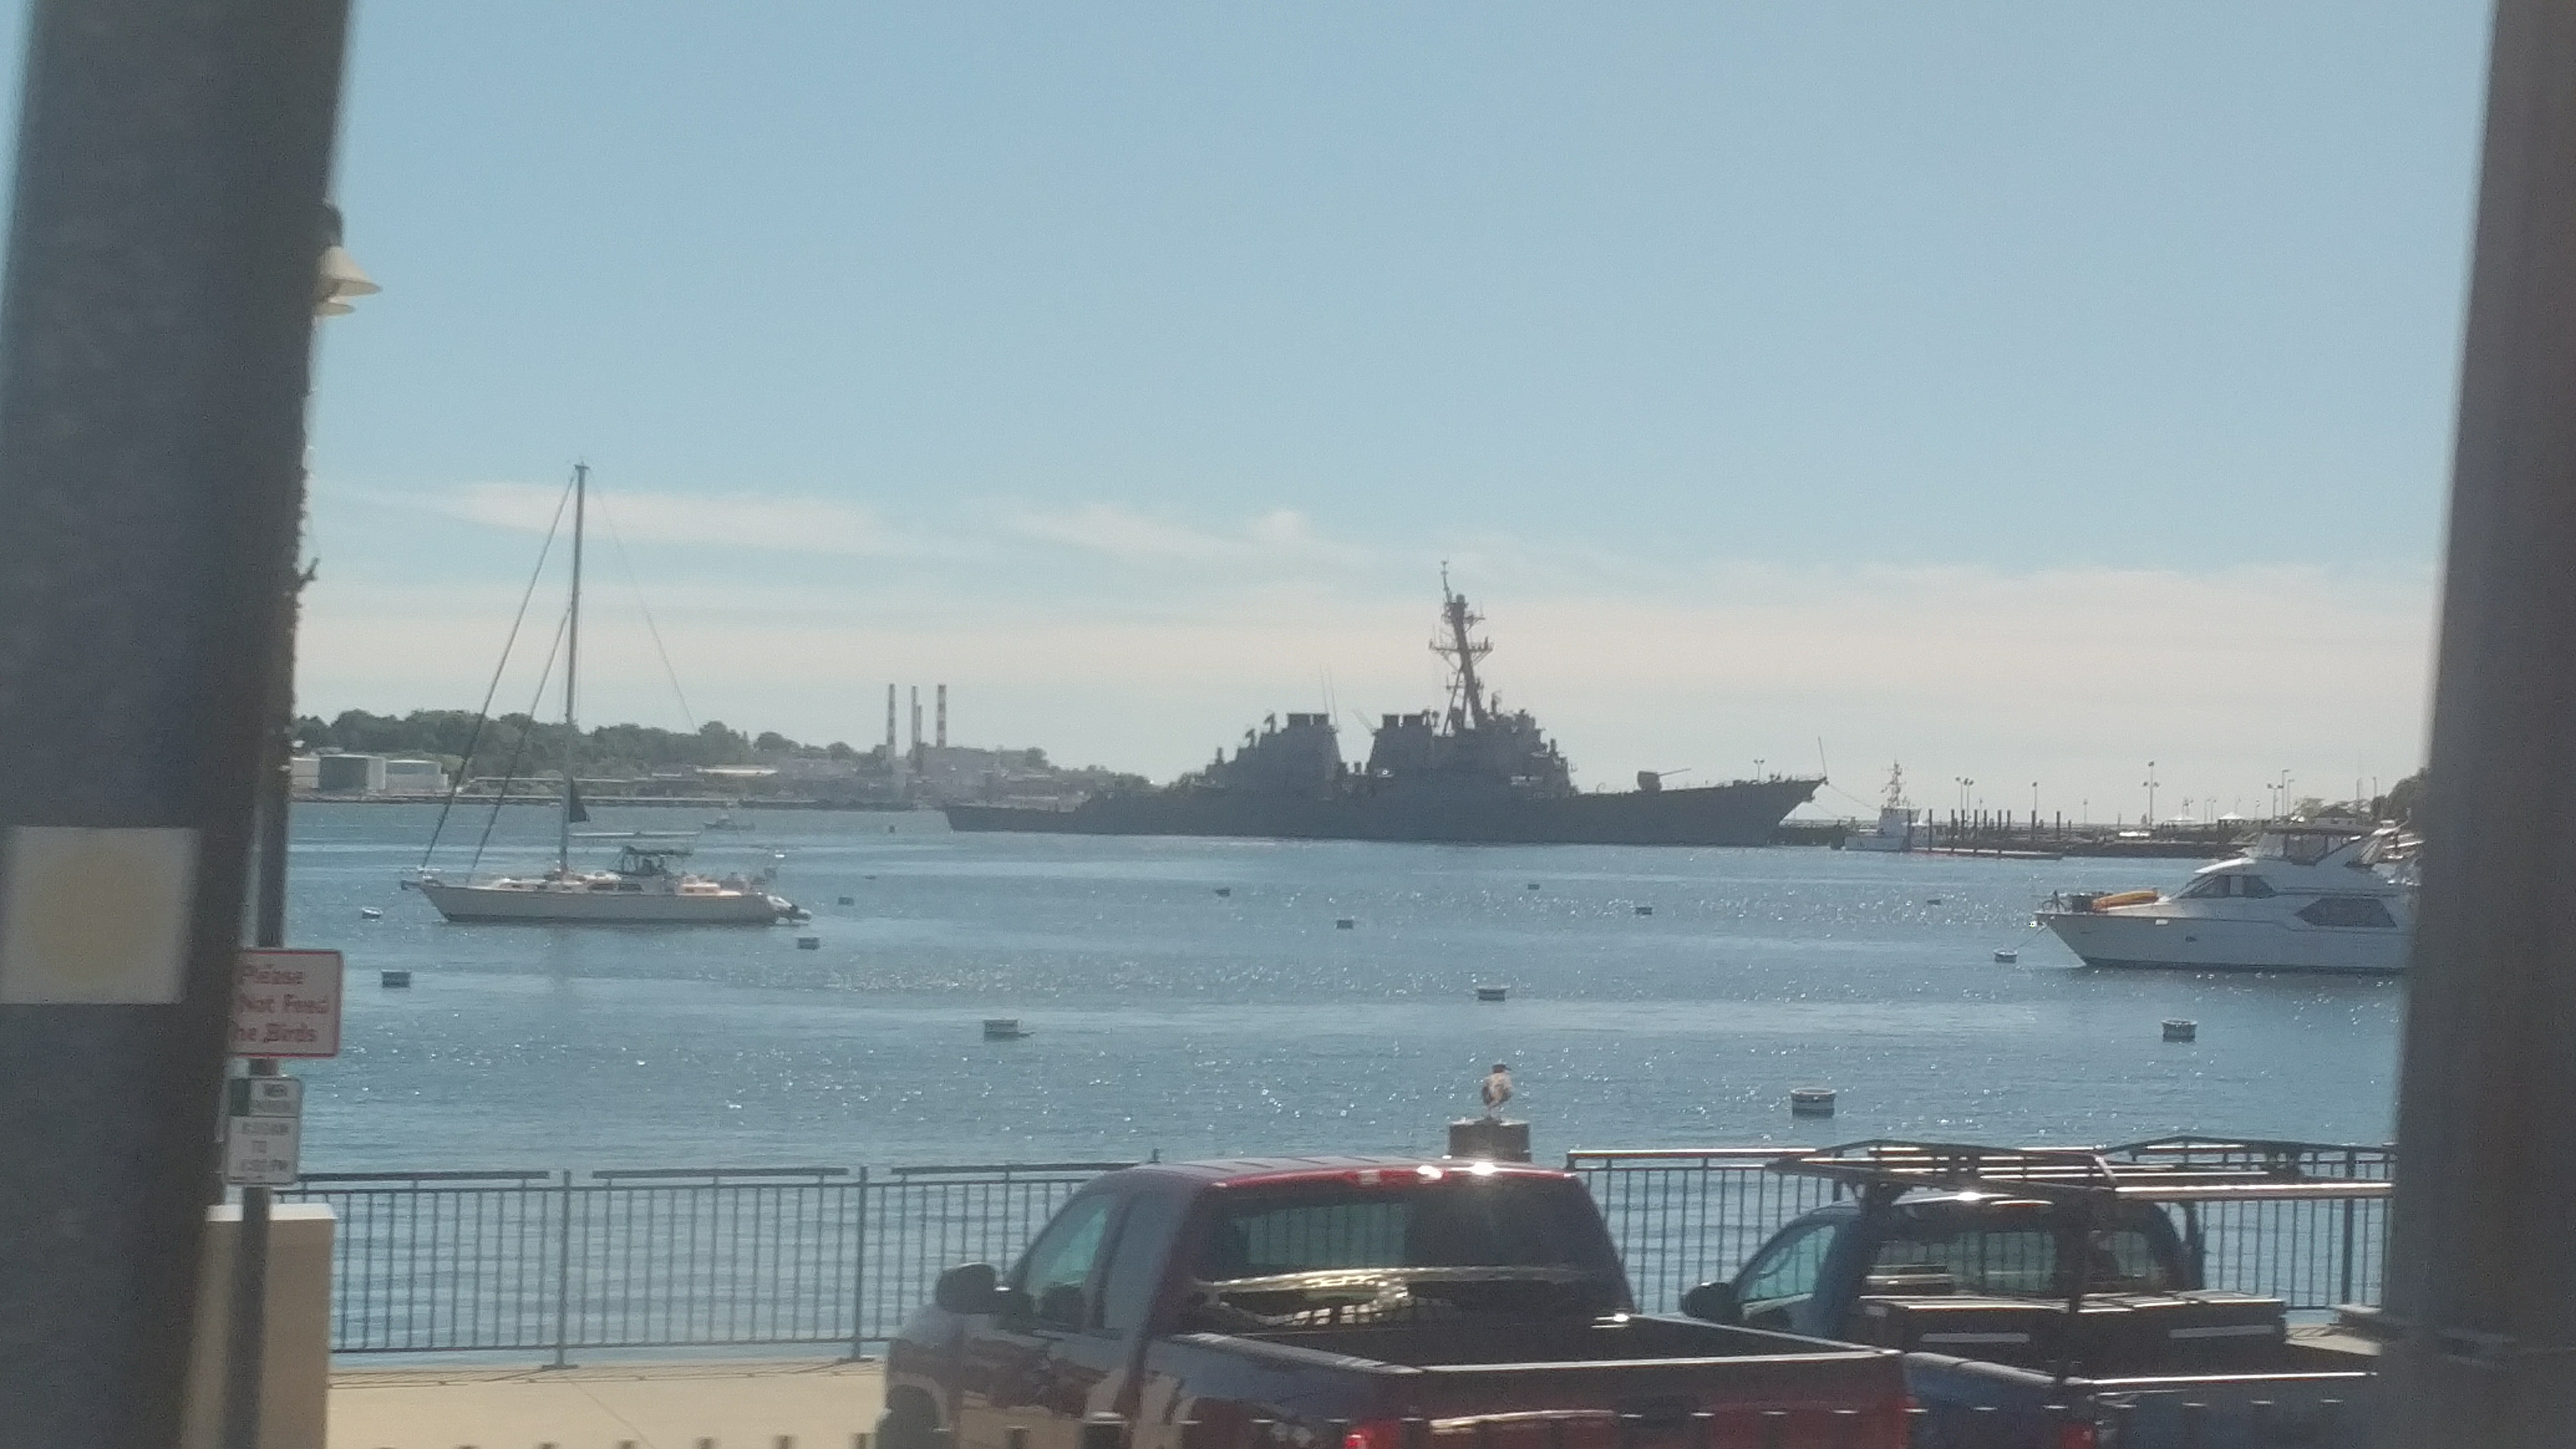 USS Truxtun docked New London, CT. Viewed from the Amtrak Acela Express